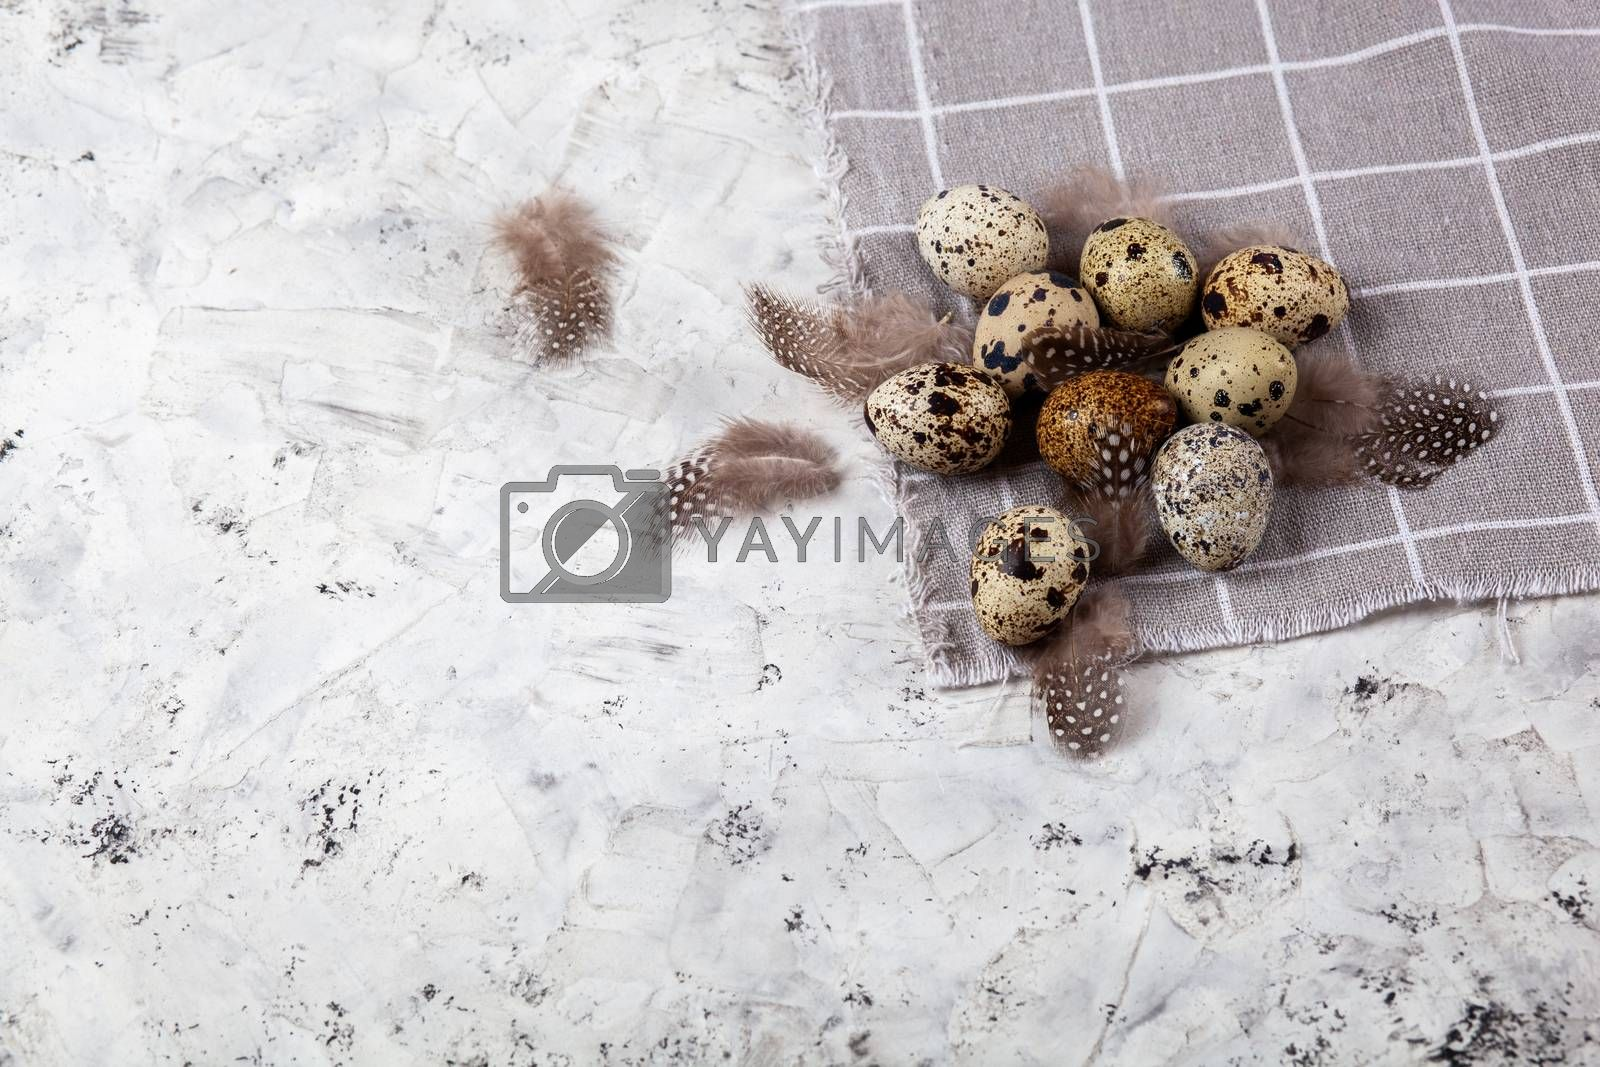 pile of Easter quail eggs on gray fabric rag on concrete background by Polina Tuliakova